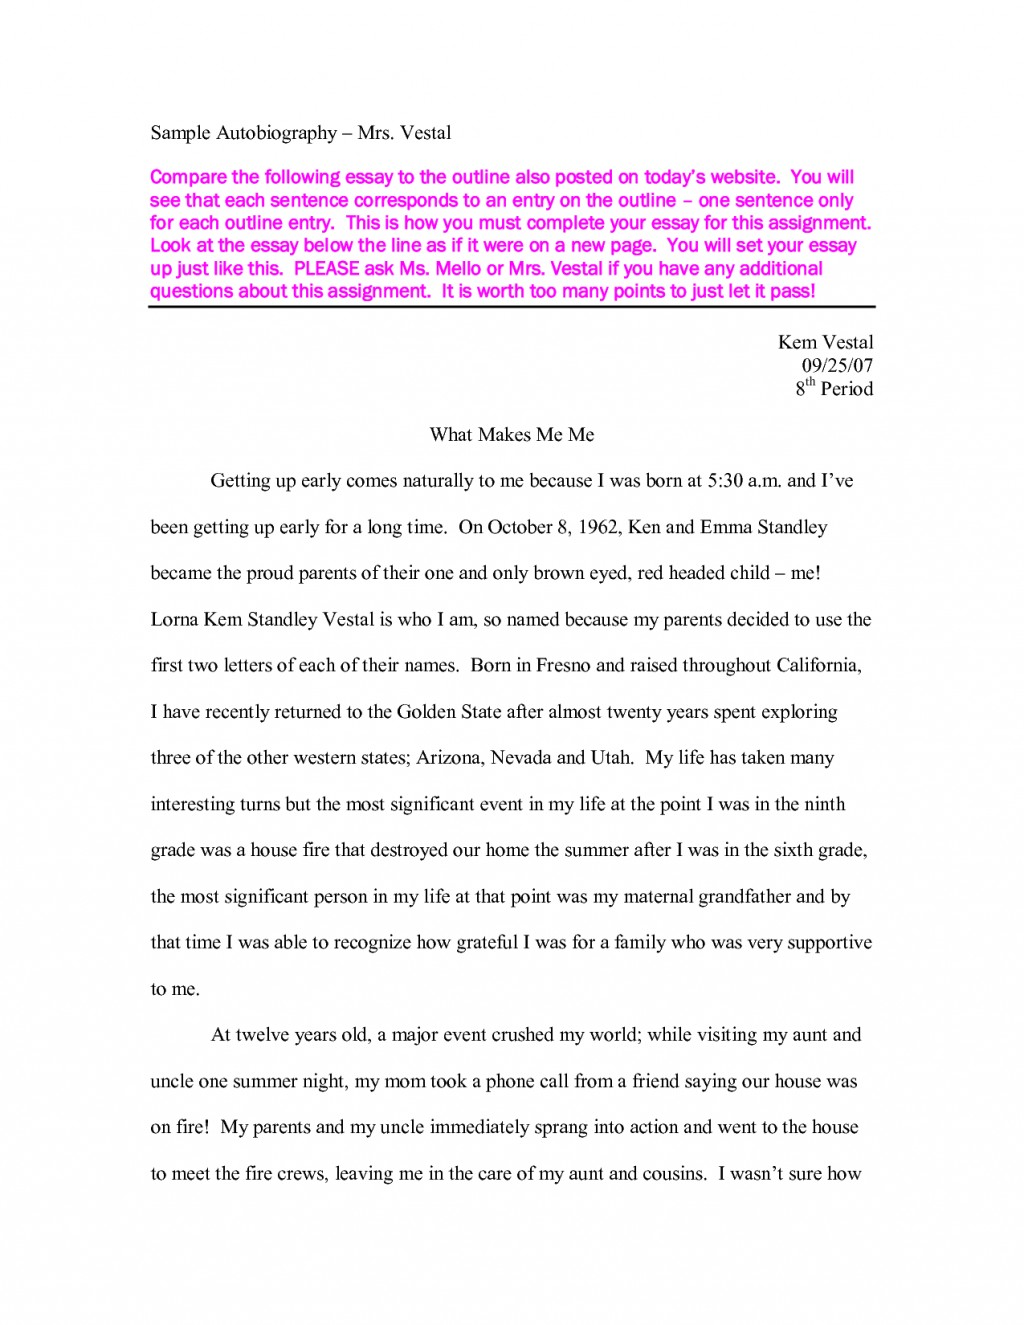 008 Autobiography Essay Example 88333 How To Write Good Incredible A Biographical Bibliography Biography About An Author Pdf Large